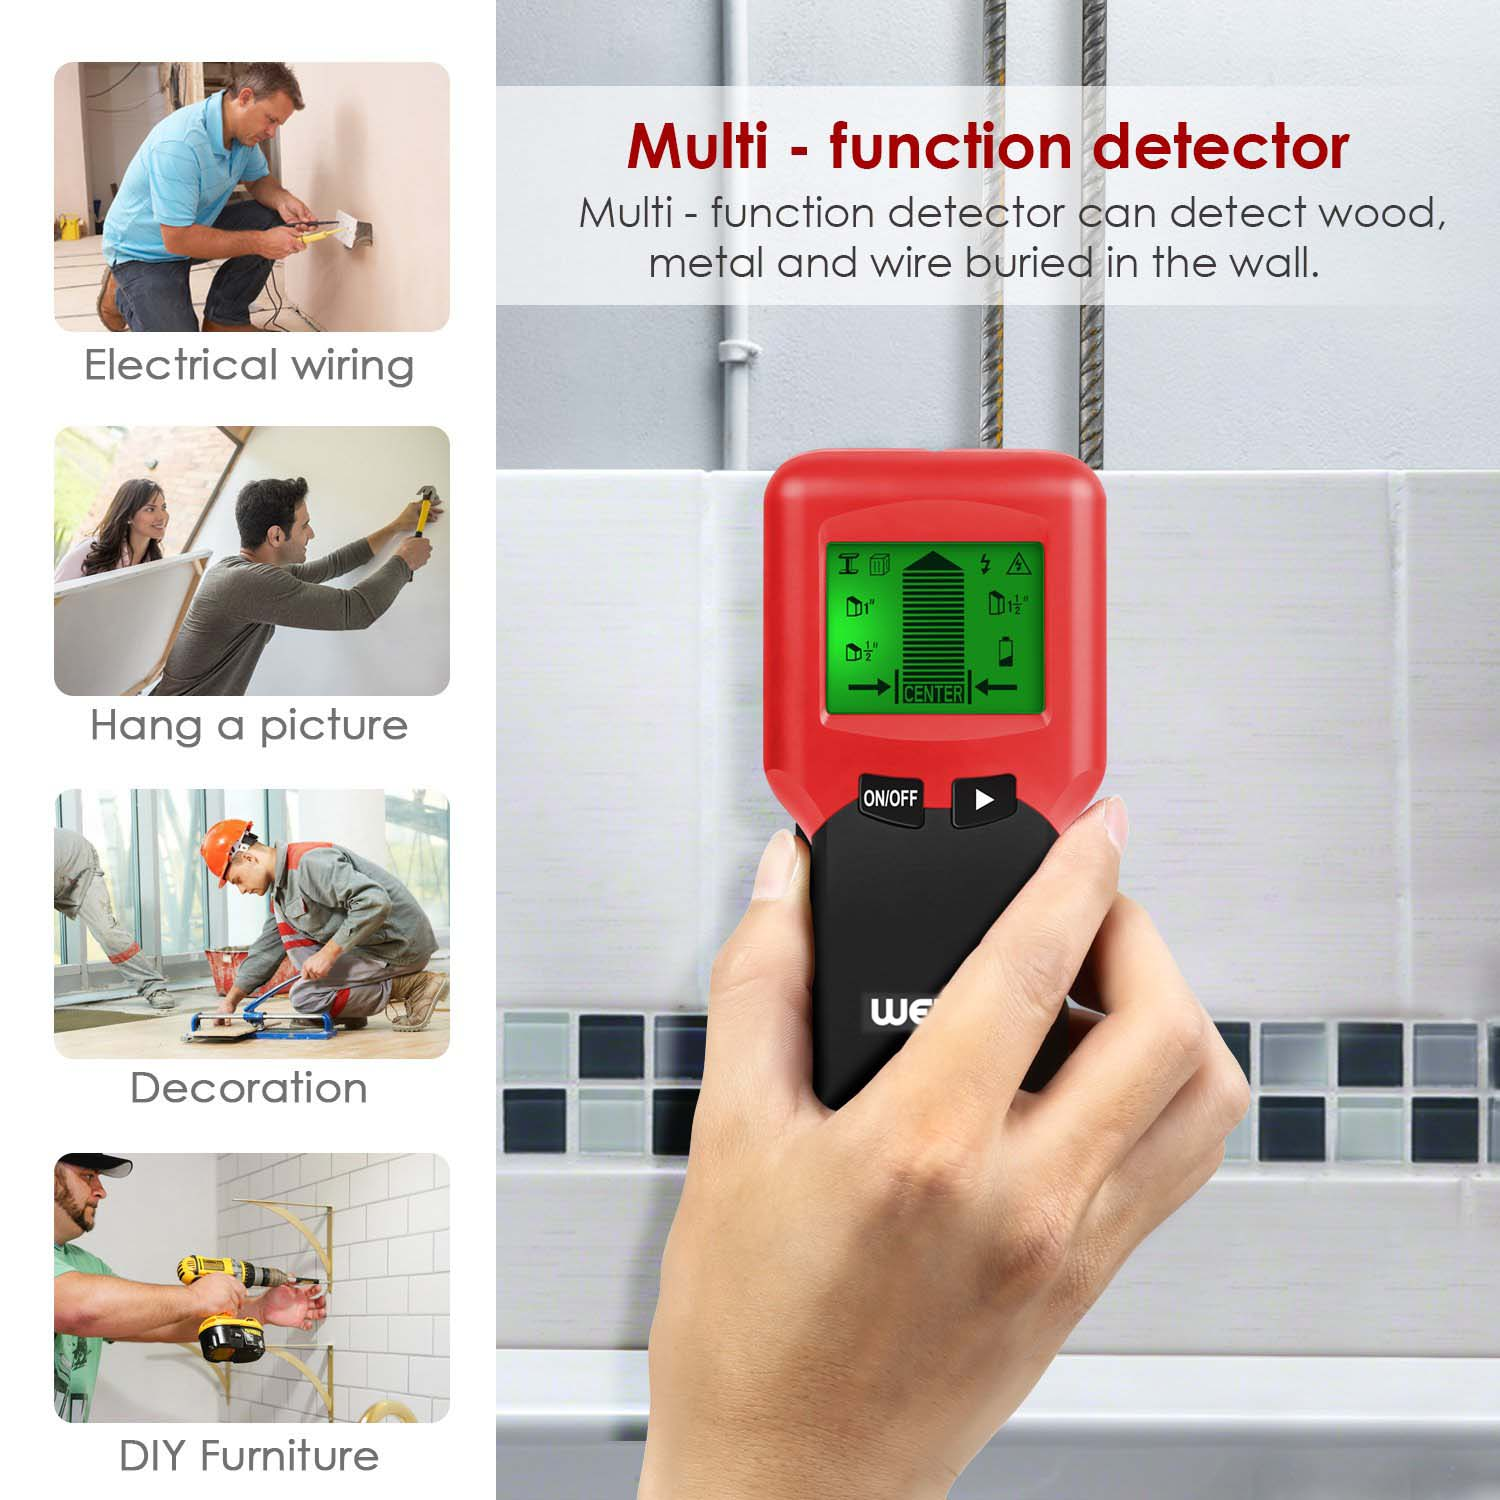 welquic stud finder tool, magnetic stud finder and level wall stud sensor scanner detector with lcd display, 3 in 1 metal ac live wire detector for ac bosch wall scanner singa z 3 in 1 lcd digital stud finder